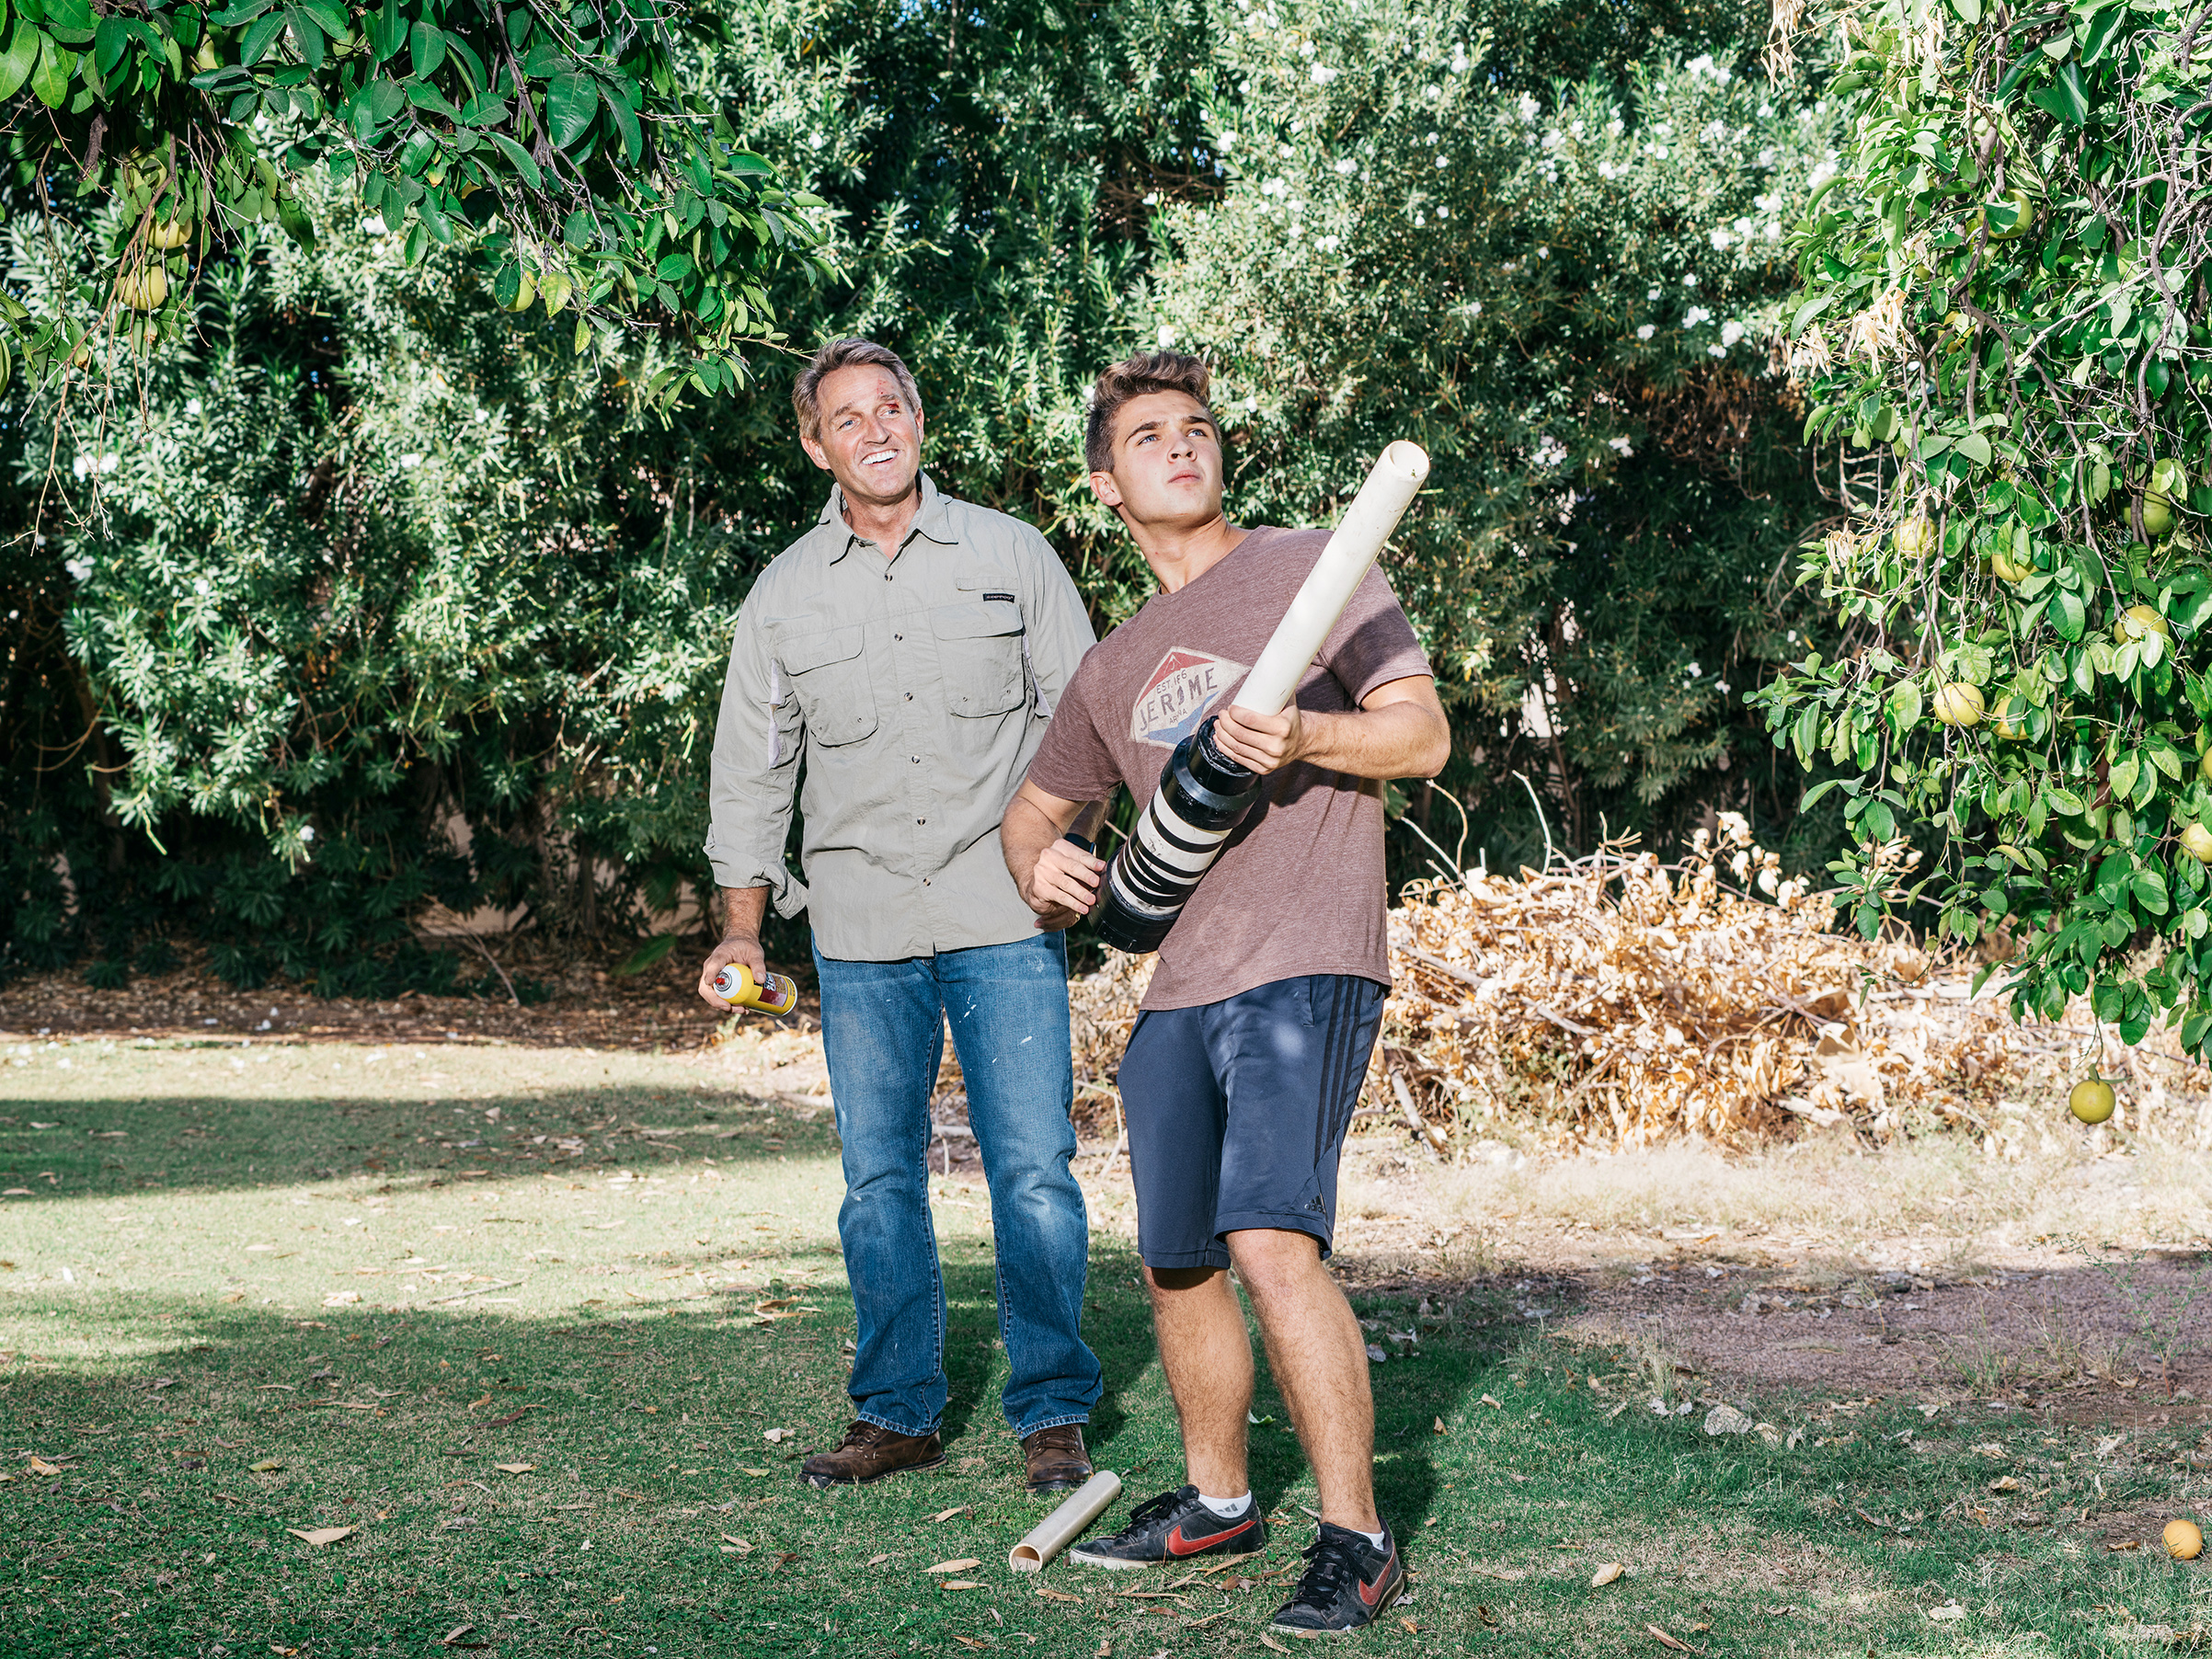 The senator and his son Dallin play with a homemade grapefruit cannon in the family's Arizona backyard.